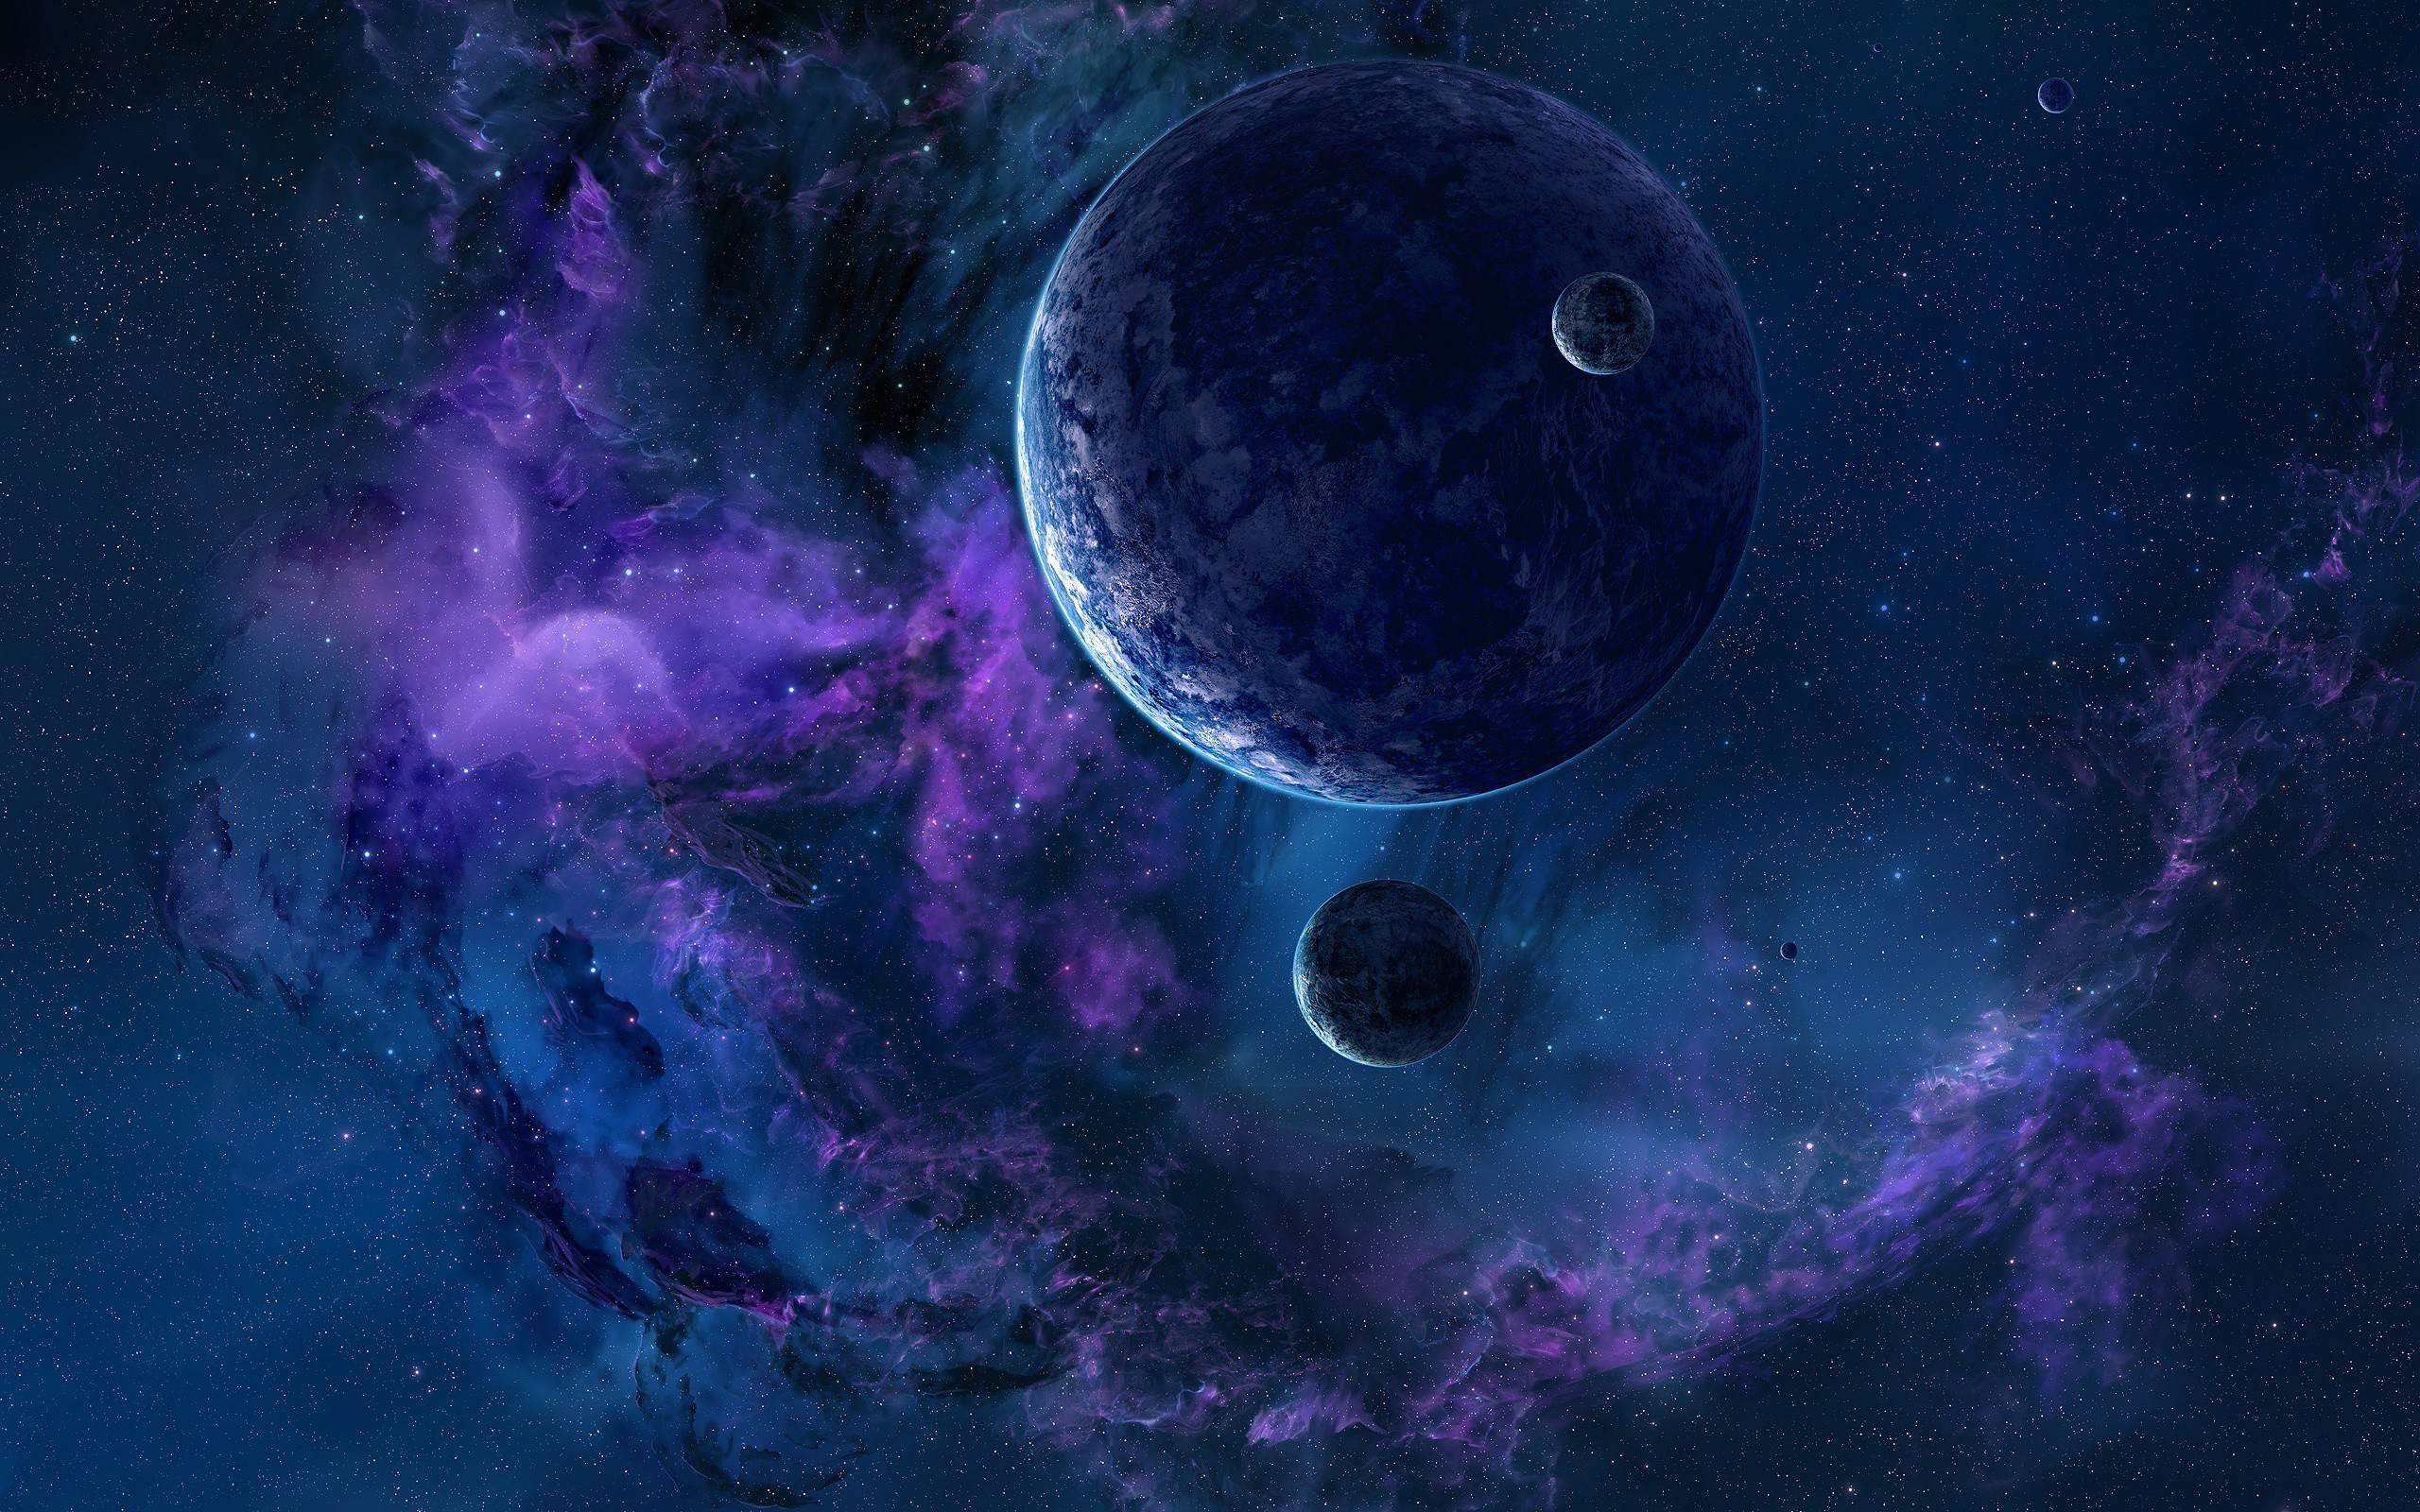 2560x1600 Space Stars And Planets Wallpaper